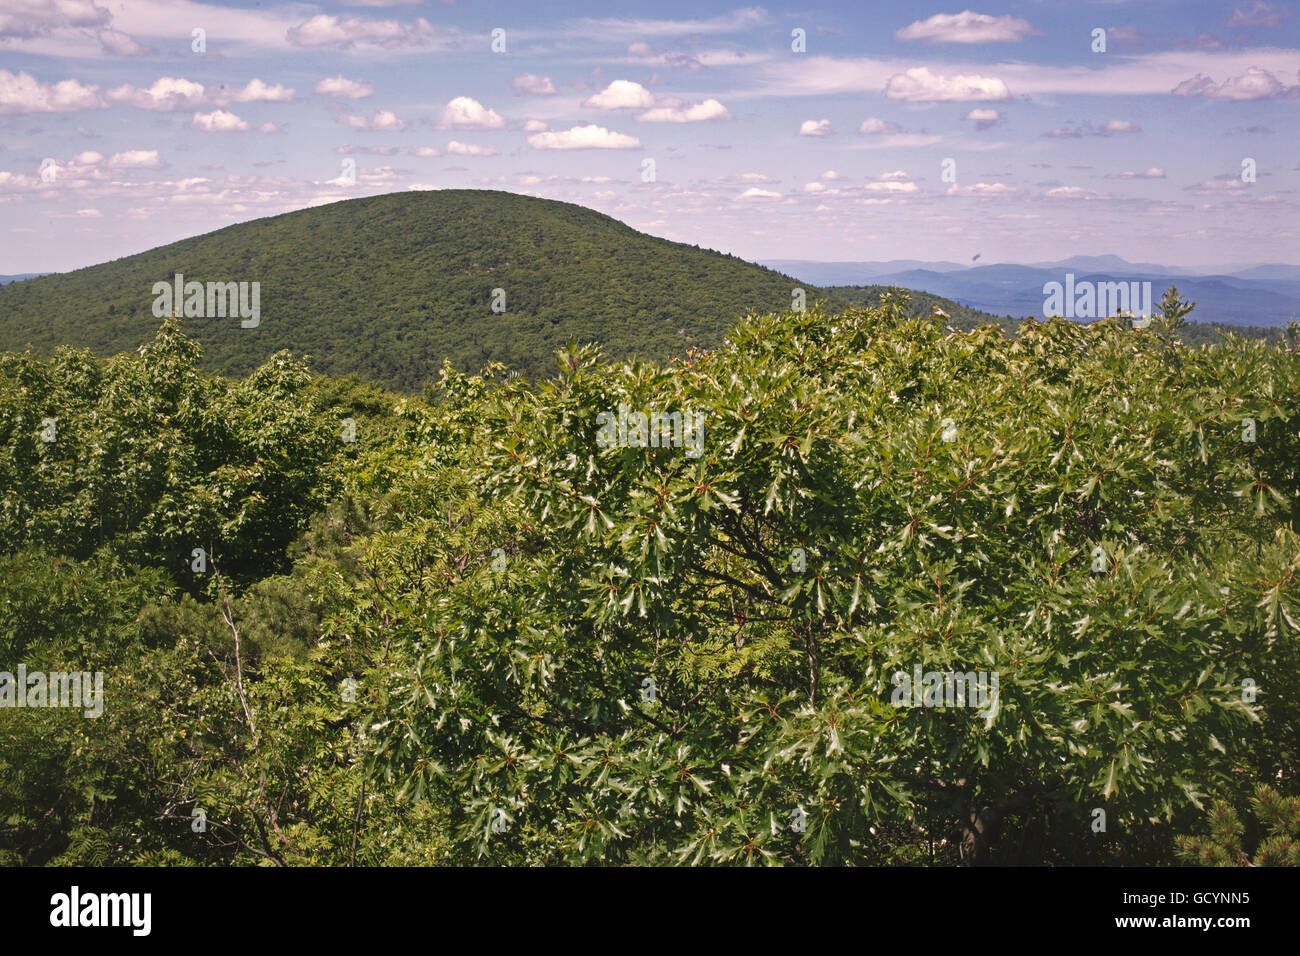 A summer afternoon view of Mount Everett on the Appalachian Trail in Massachusetts. - Stock Image